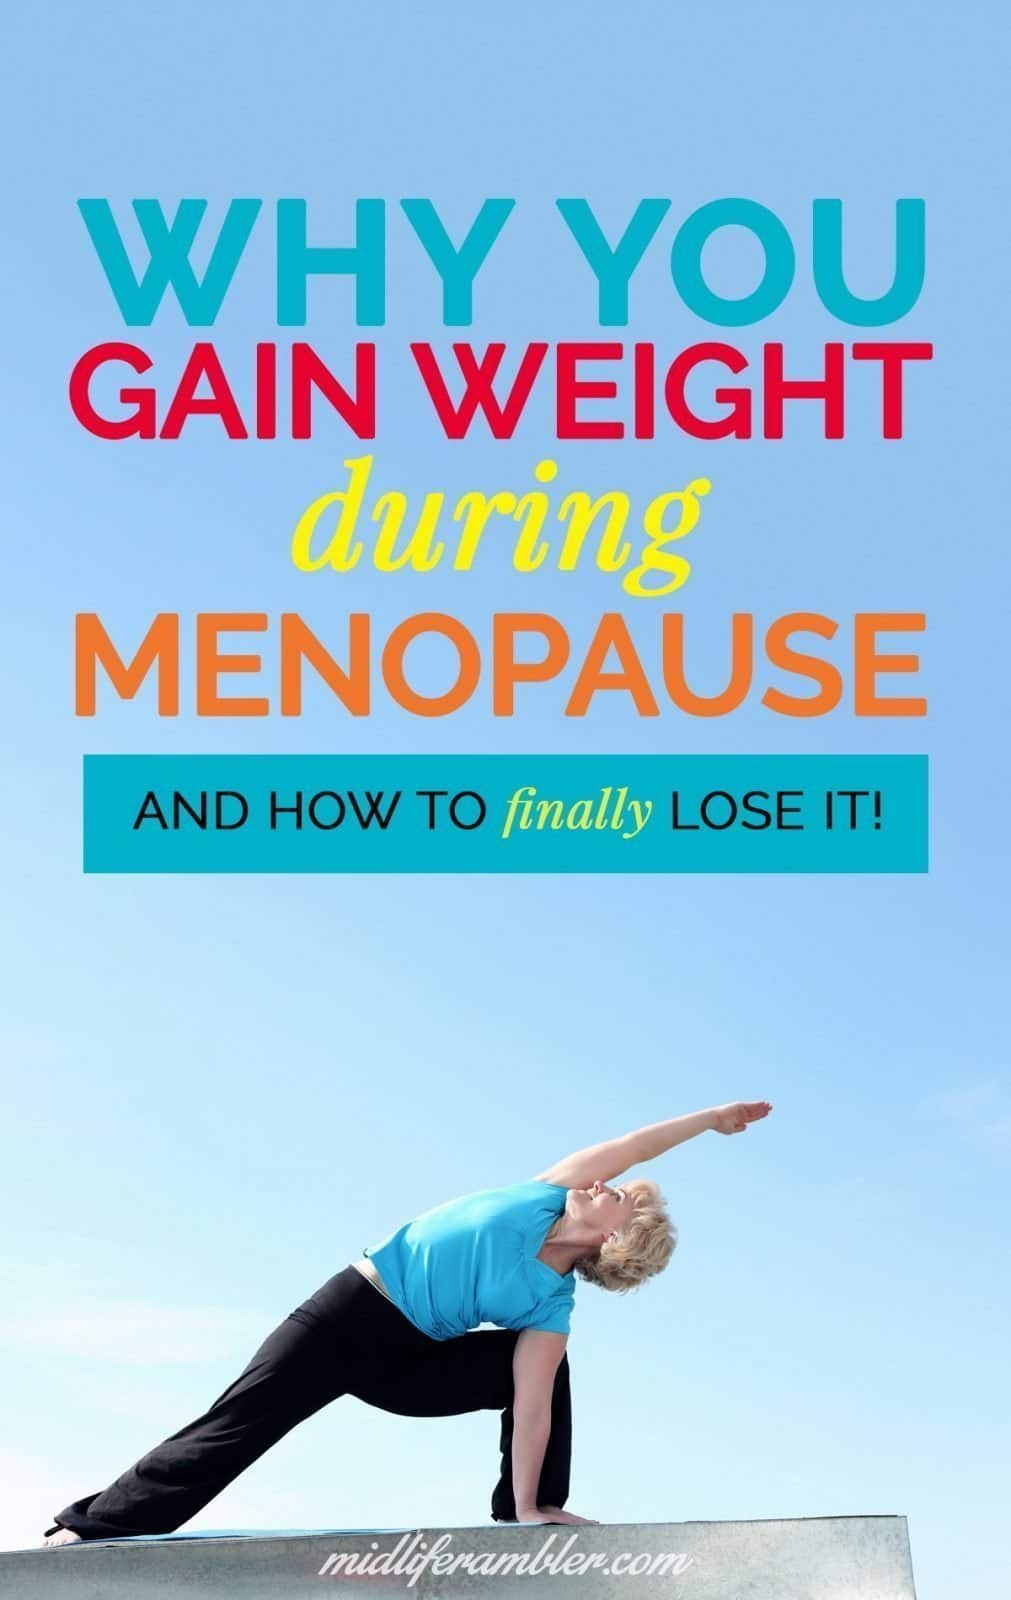 Menopausal Weight Gain: Why it Happens and How to Lose It 14